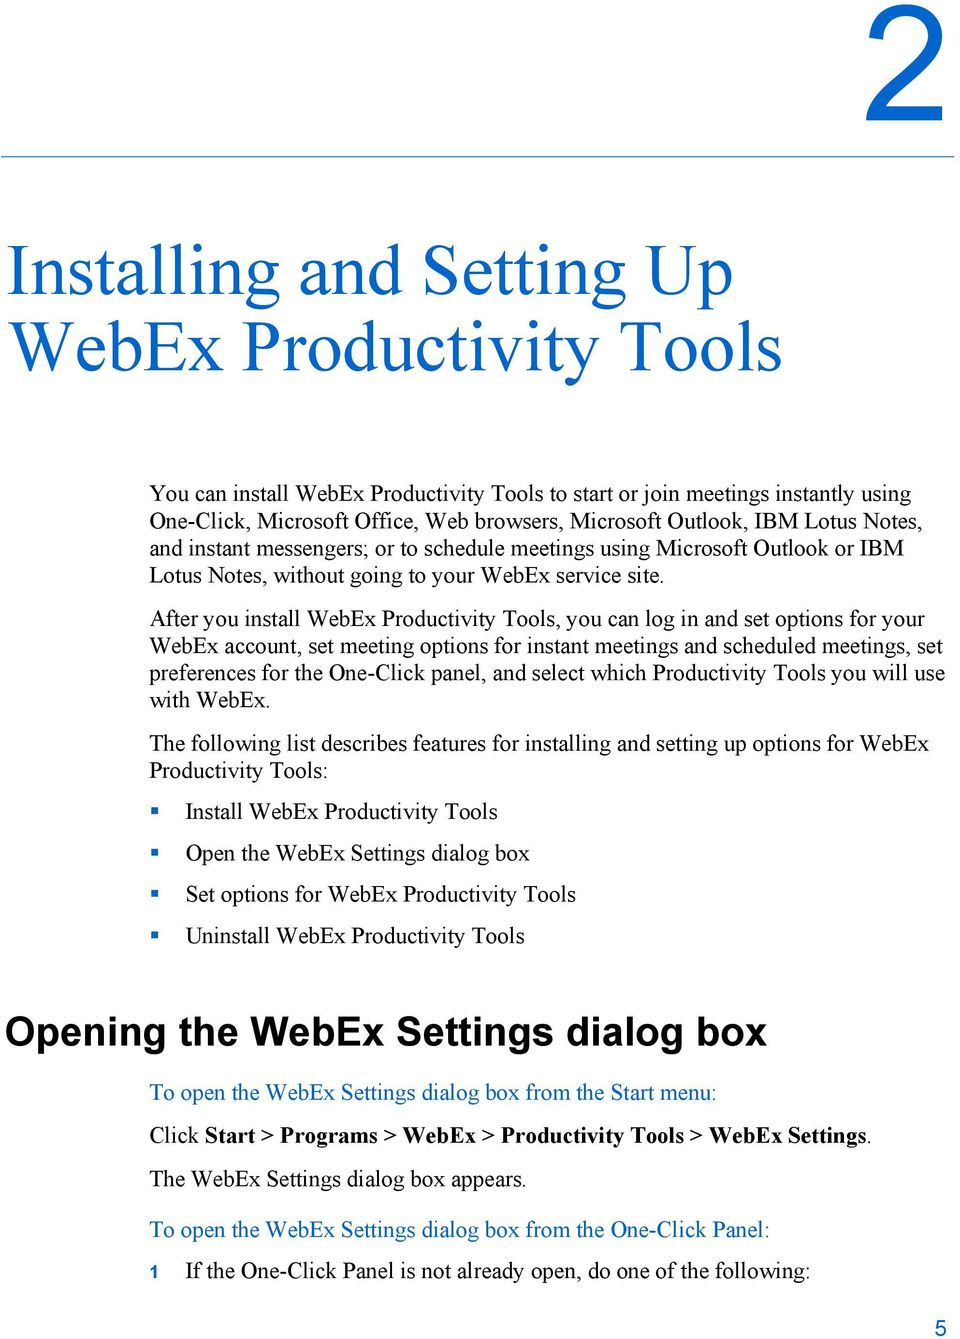 WebEx Integration to Lotus Notes  Users Guide - PDF